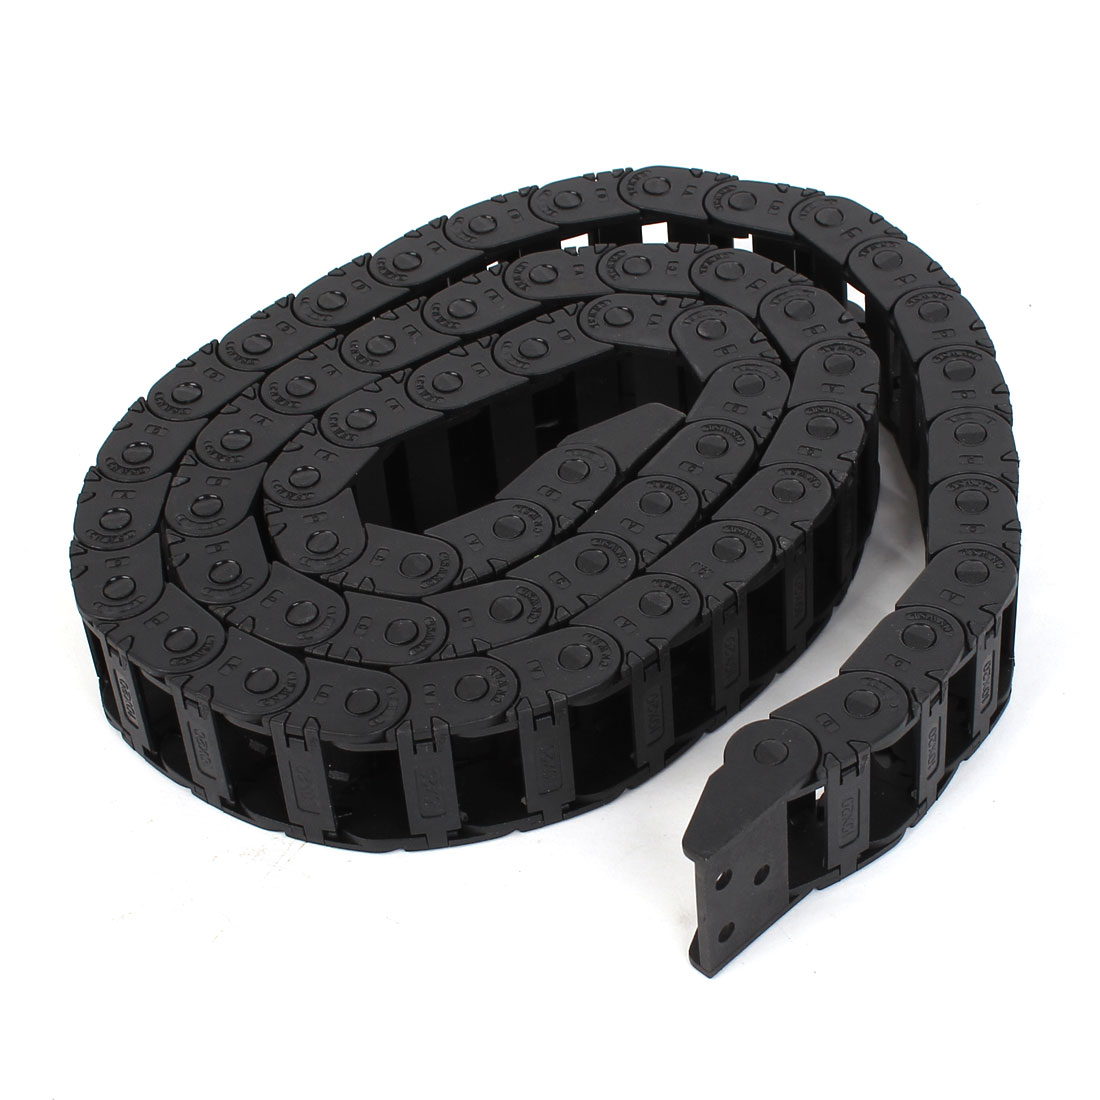 Machine Tool 10mm x 20mm Plastic Towline Drag Chain Black